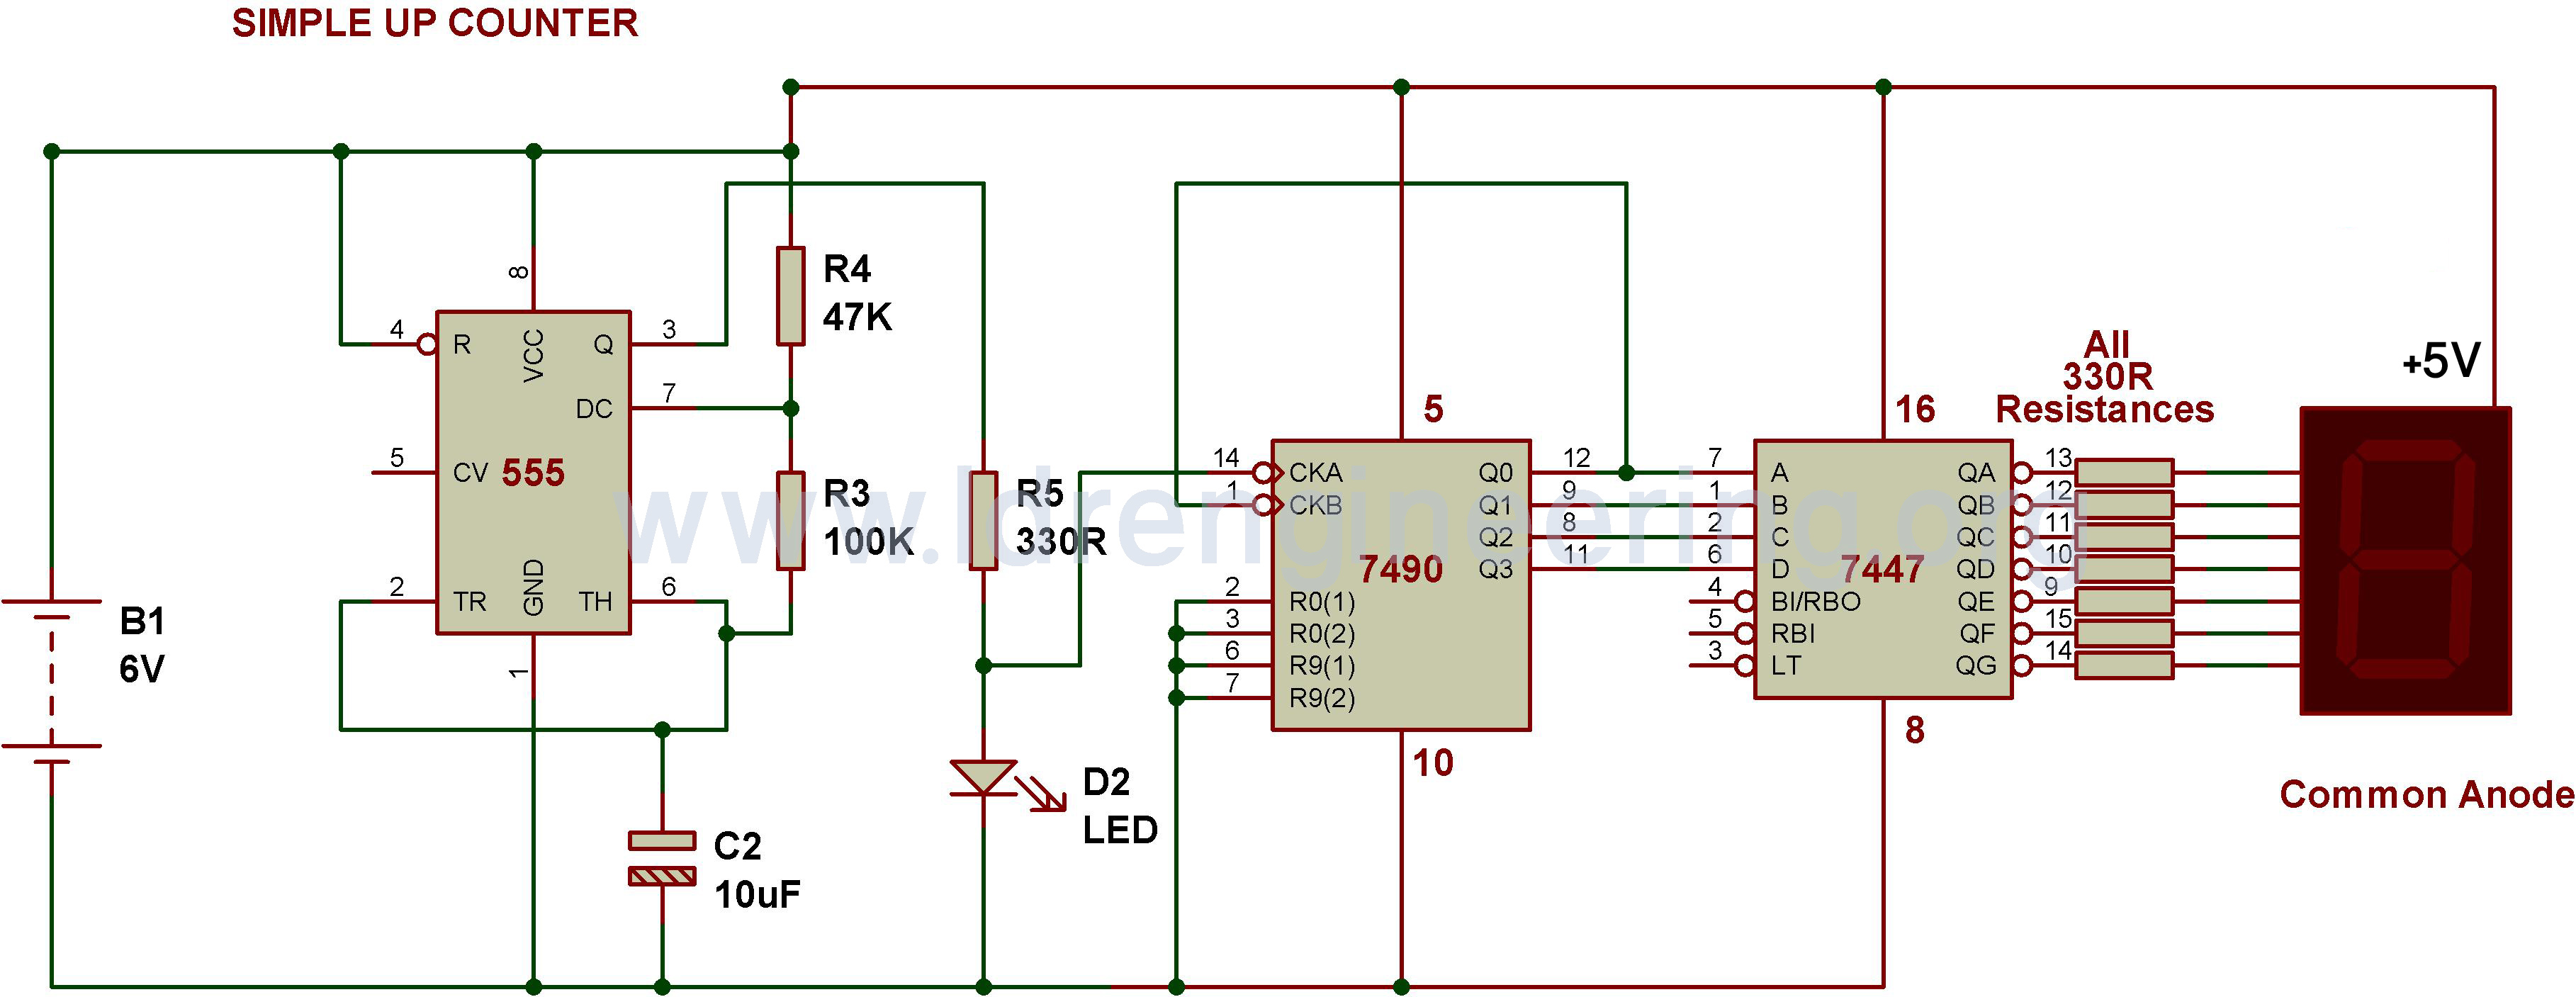 555 timer wiring diagram 2000 chevy silverado digital stopwatch circuit using ic cd 4033 7 segment counter best library